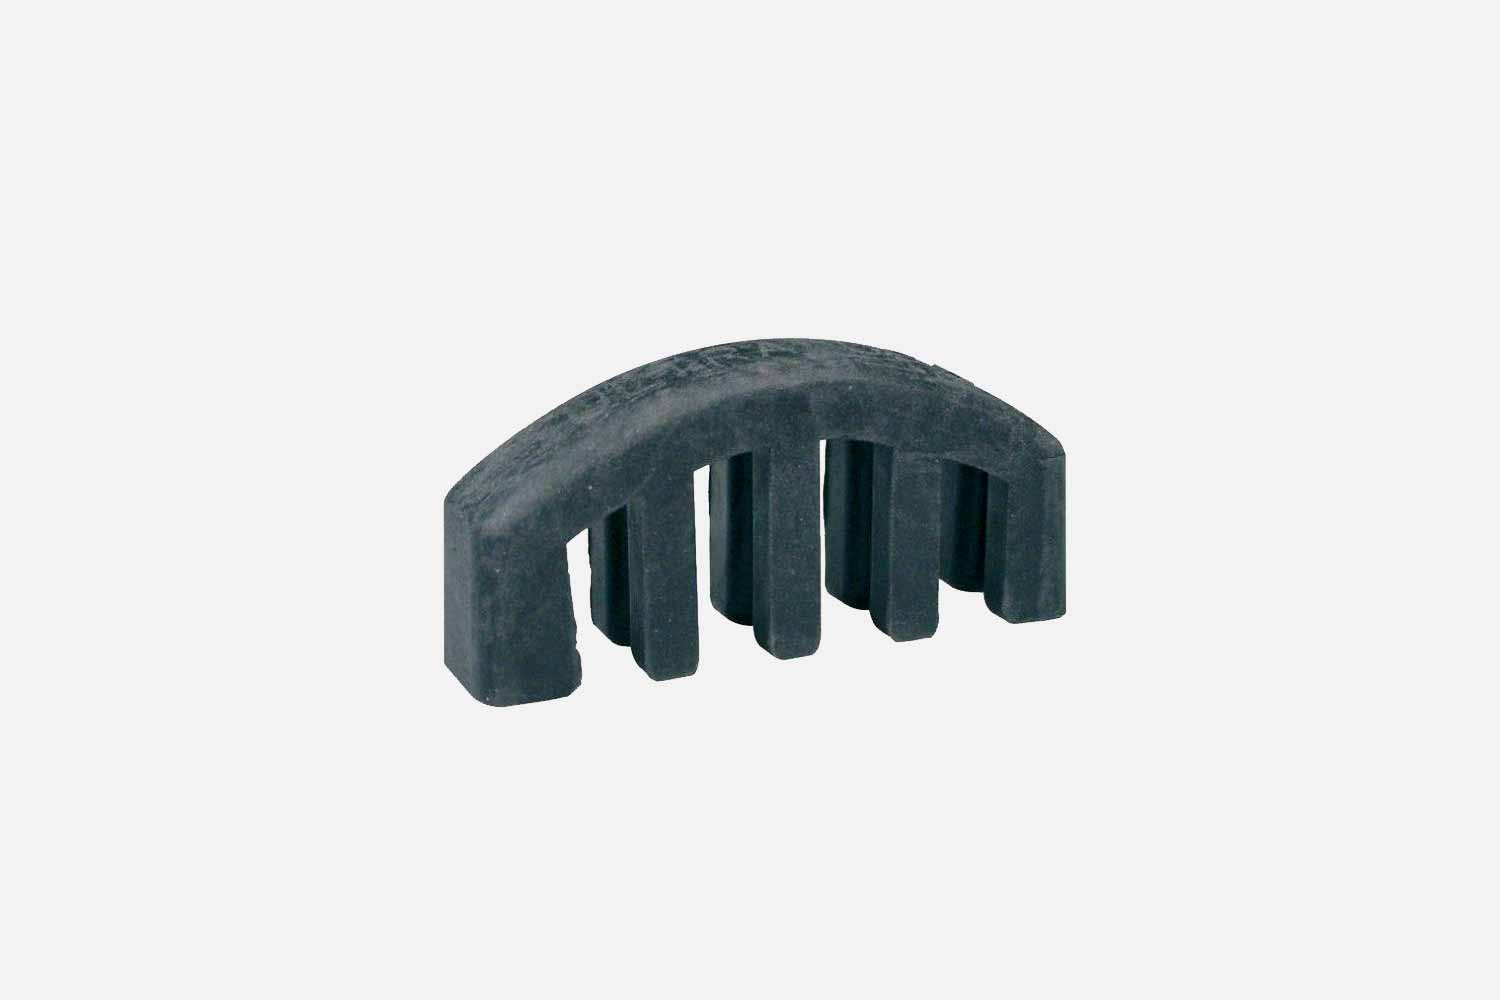 Gewa Cello Demper Rubber Kammodel (5379356000420)